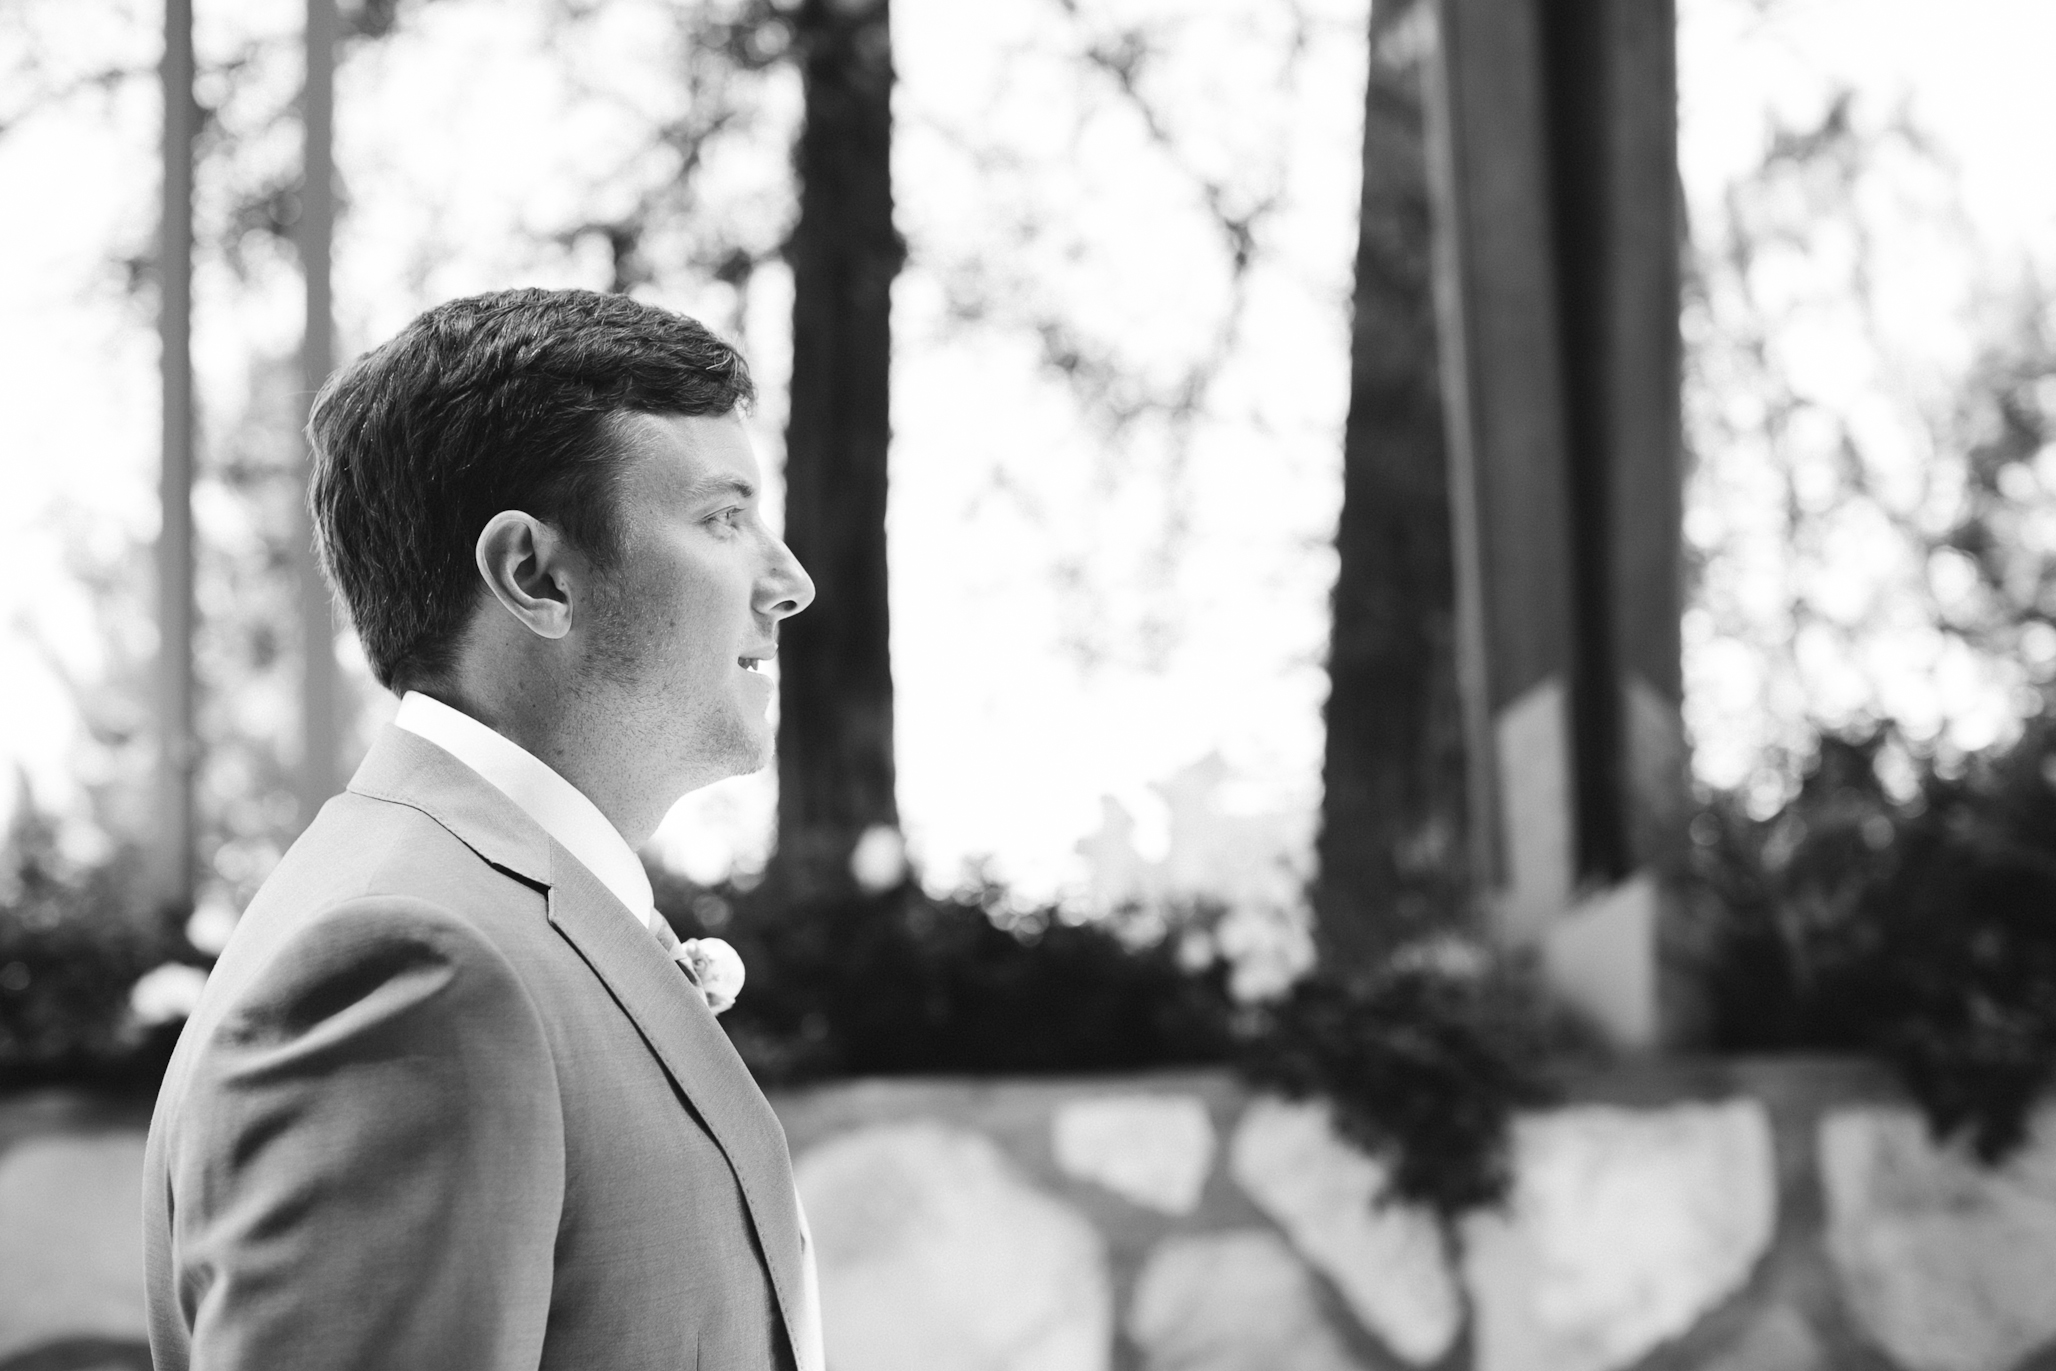 Casey getting ready for his bride to walk down the aisle